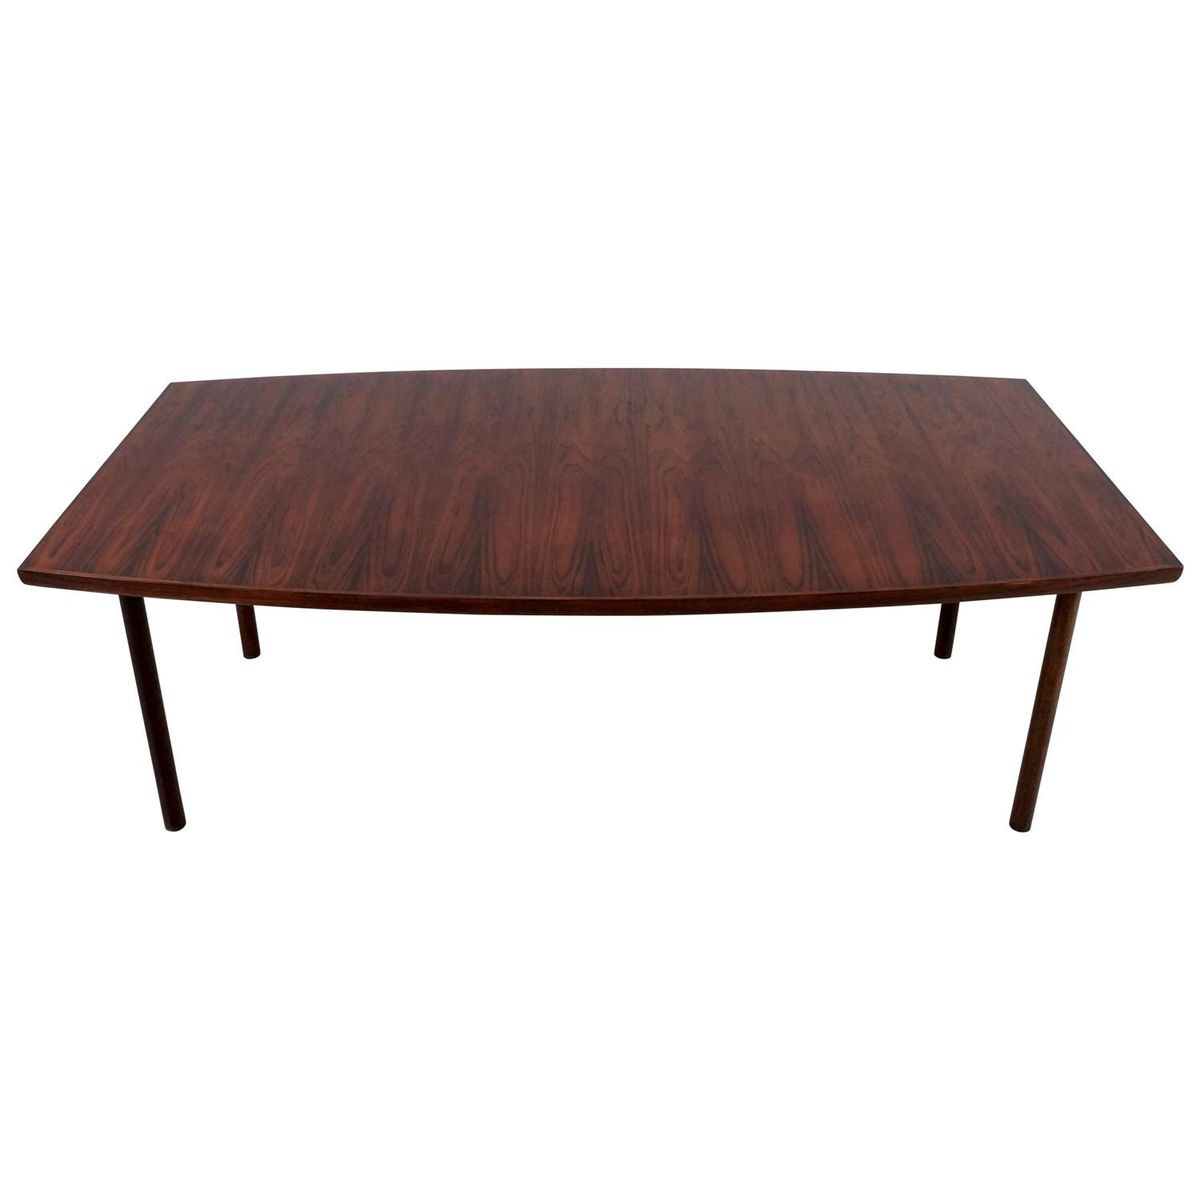 Mid Century Rosewood Boat Shaped Dining or Conference  : mid century rosewood boat shaped dining or conference table 1 from www.pamono.co.uk size 1200 x 1200 jpeg 34kB